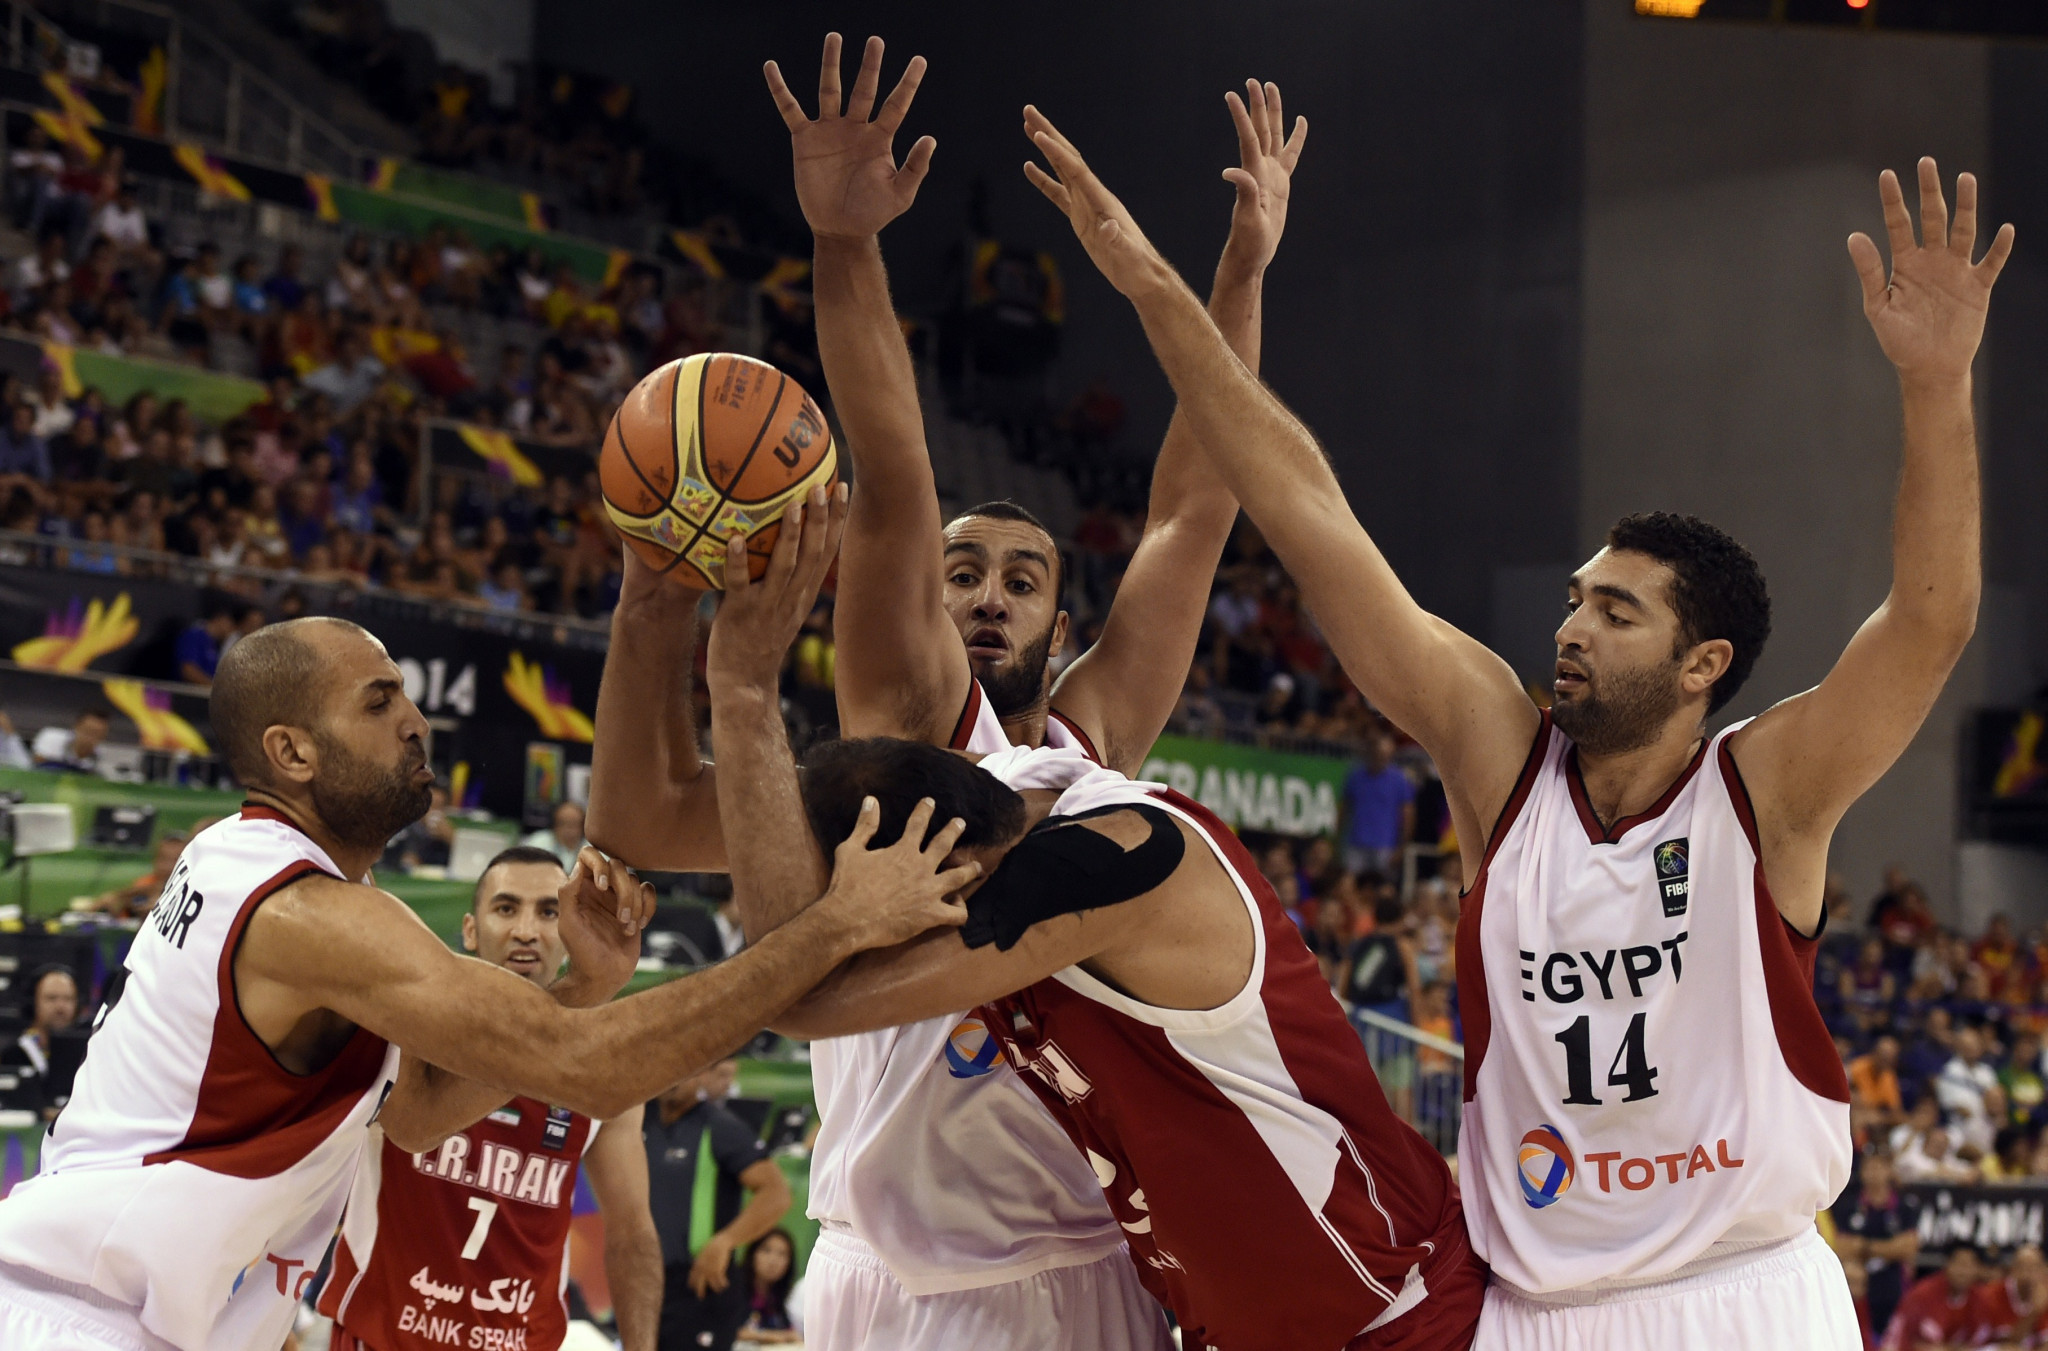 Top Egyptian players were set to be among those competing in the Basketball Africa League for 2020 ©Getty Images